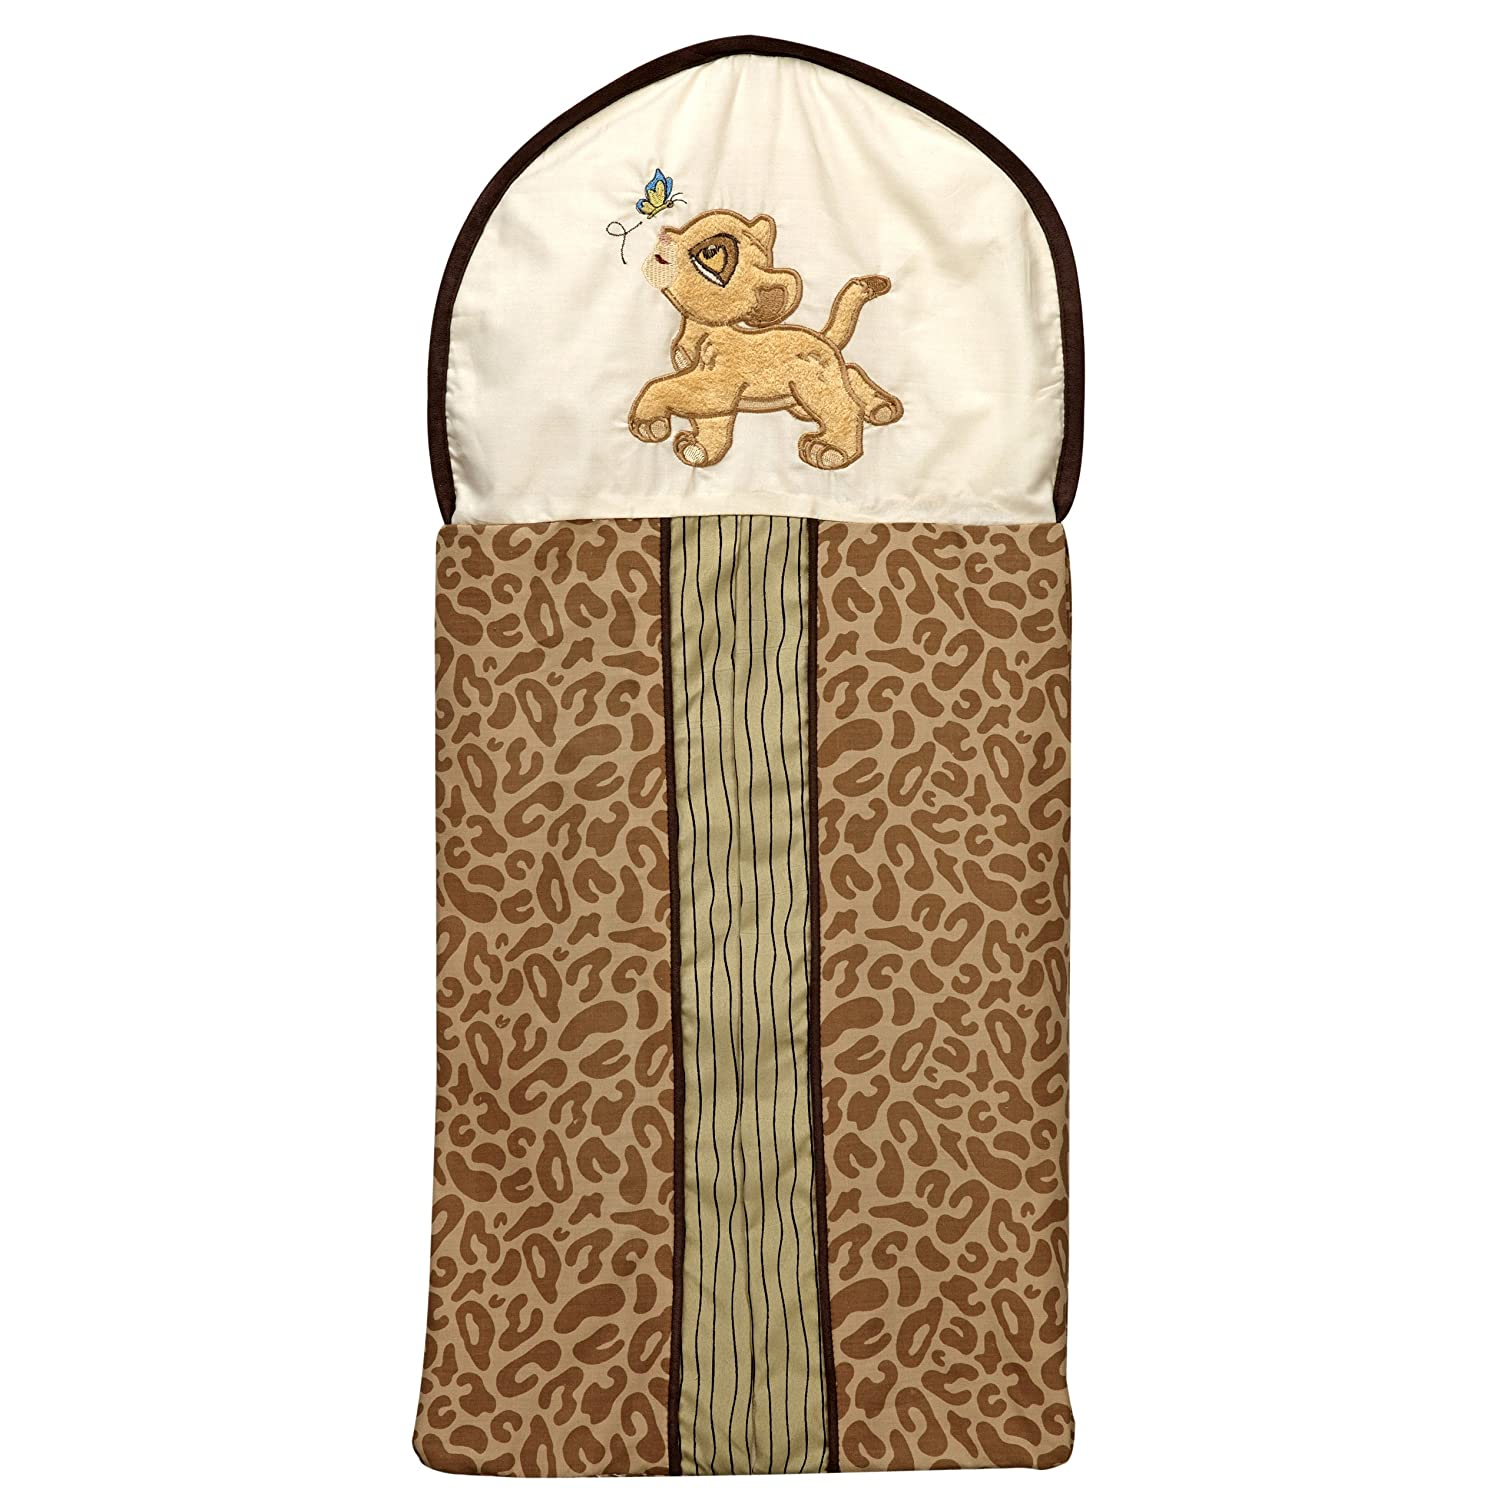 Disney Lion King Simbas Wild Adventure Appliqued Diaper Stacker Sage Tan Brown Ivory